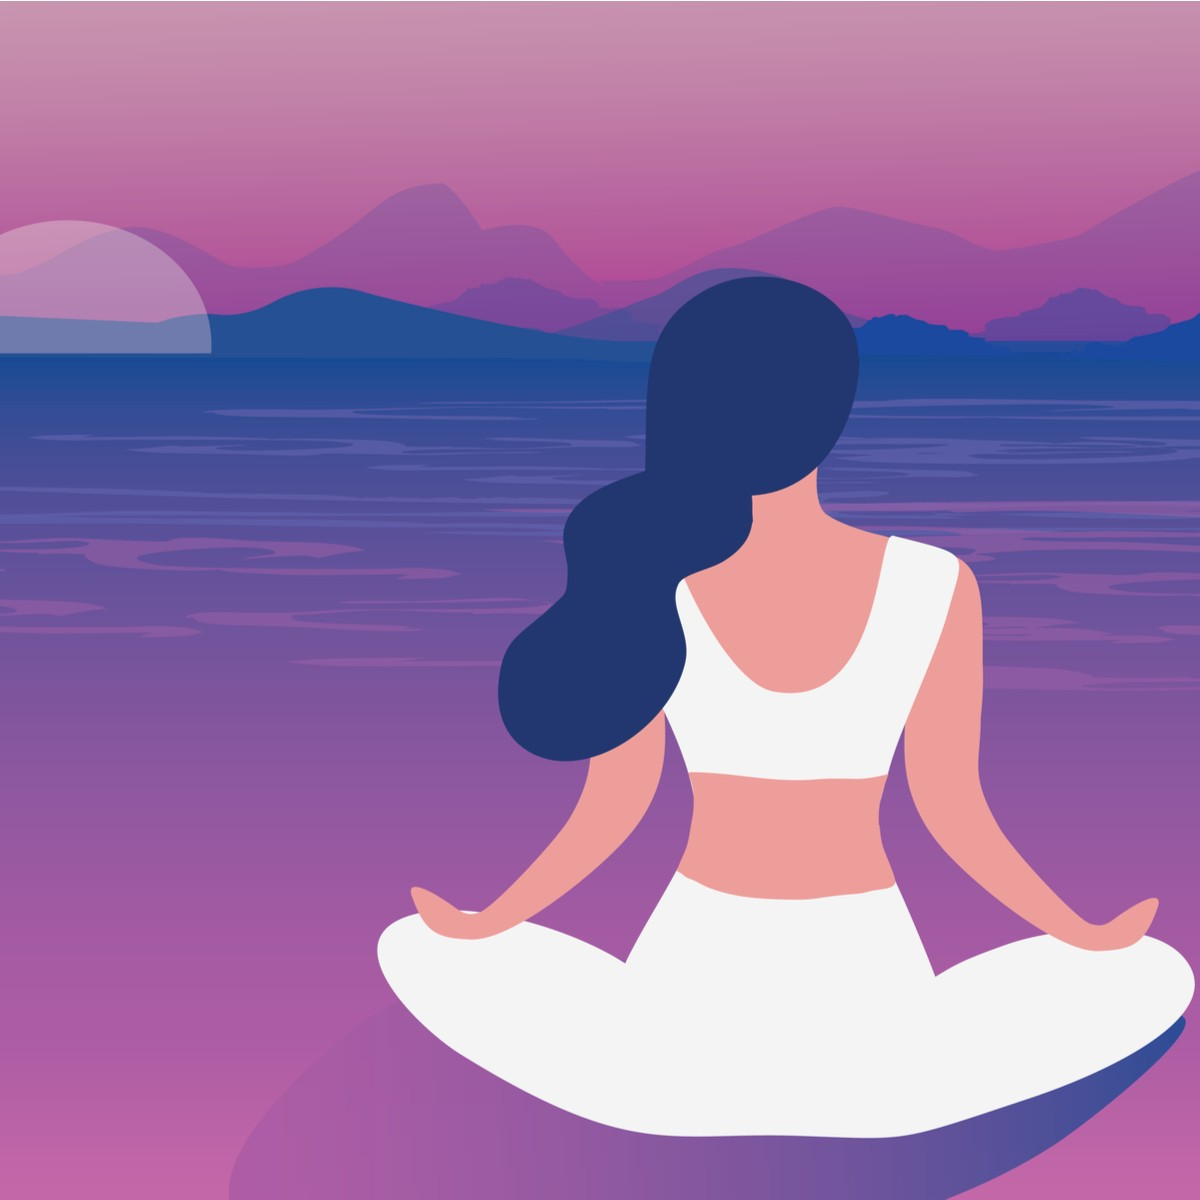 woman sitting on a beach at sunset meditating